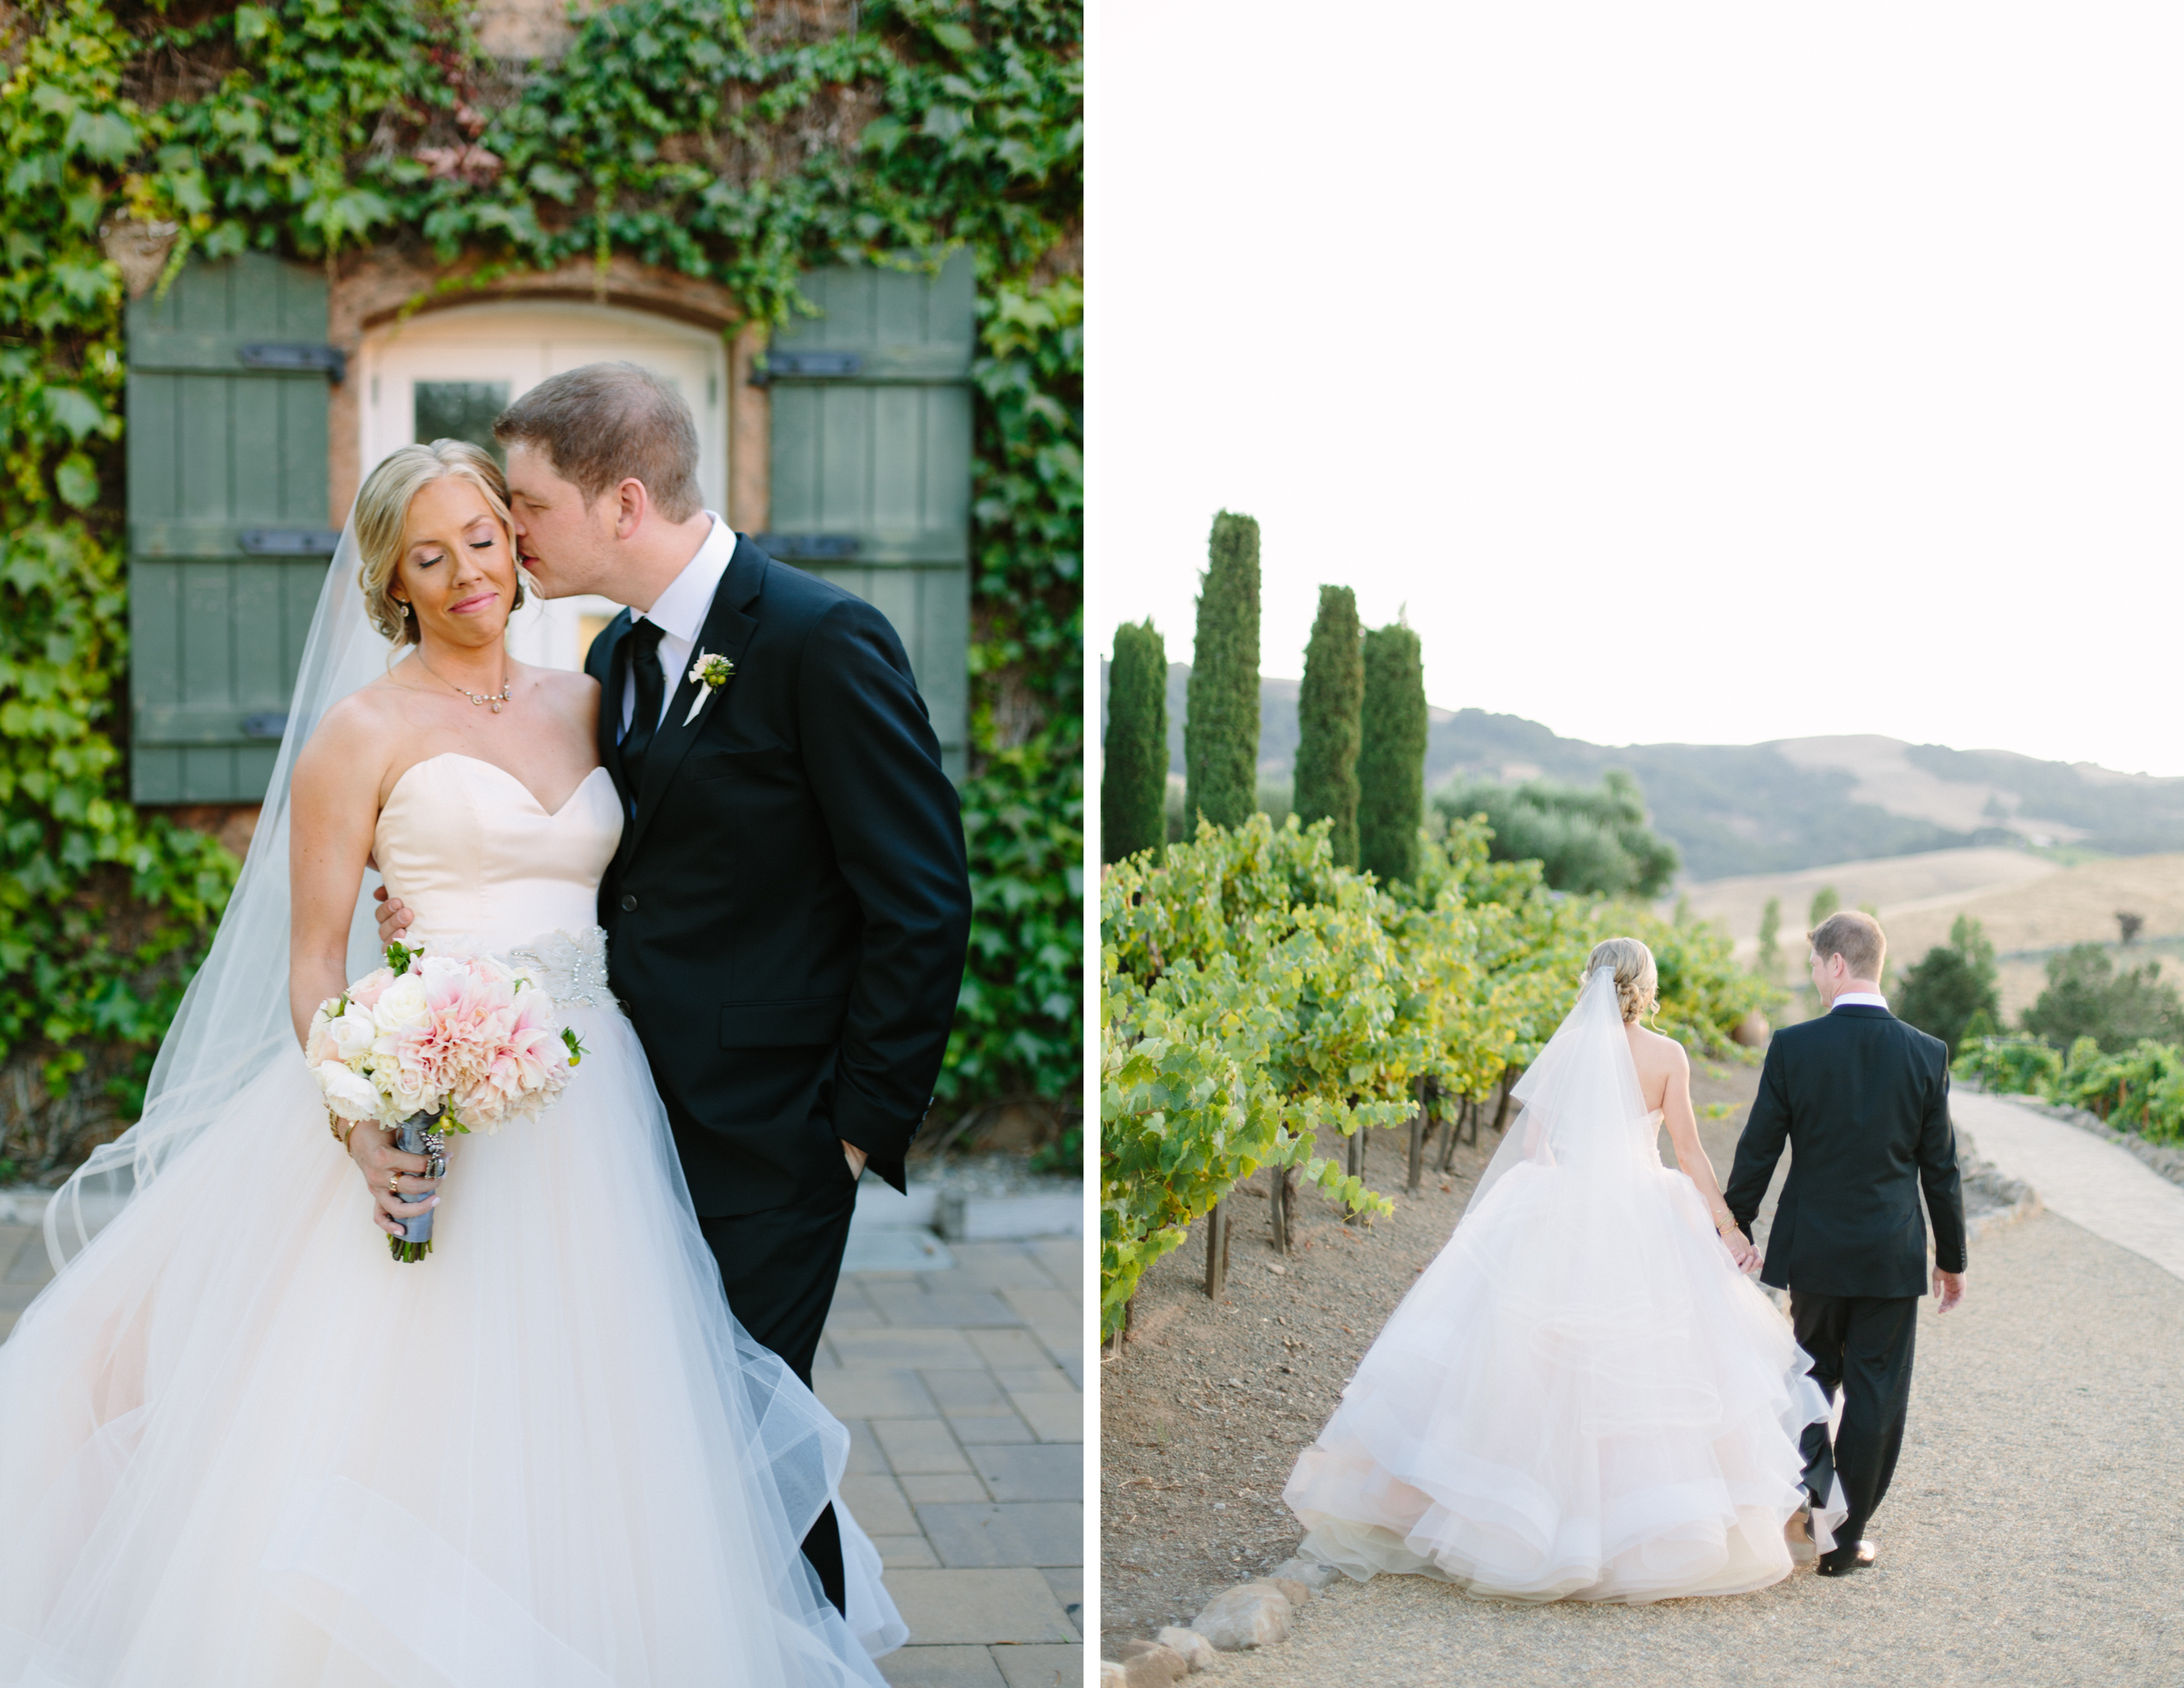 viansa winery wedding 10.jpg